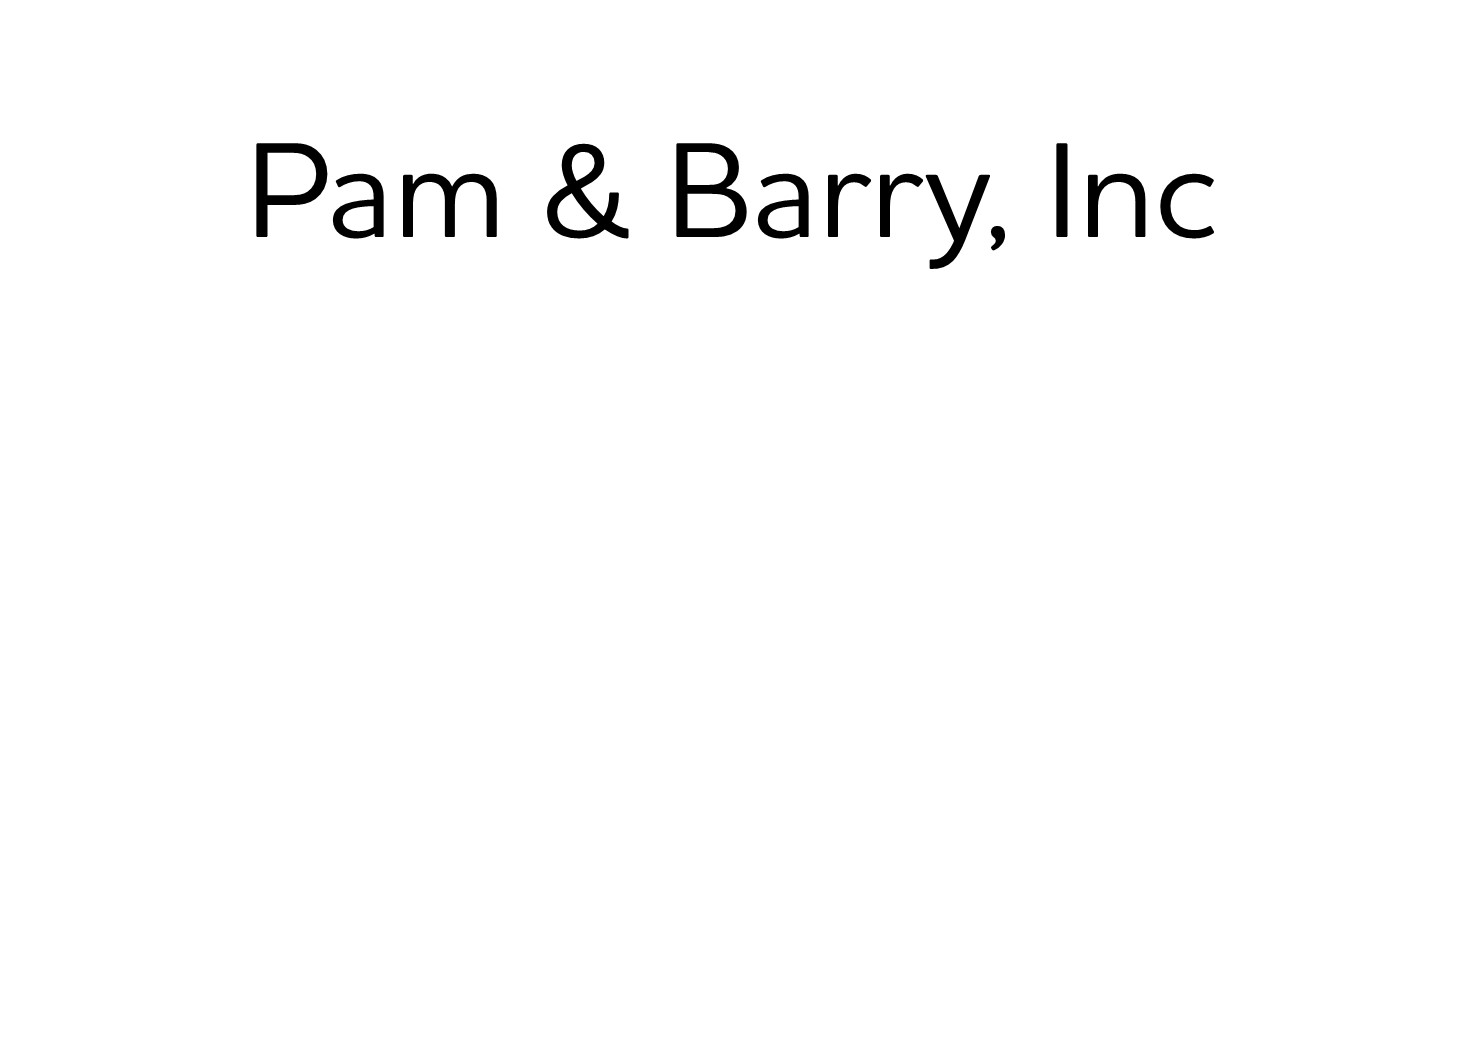 440. Pam & Barry, Inc. ( Silver)